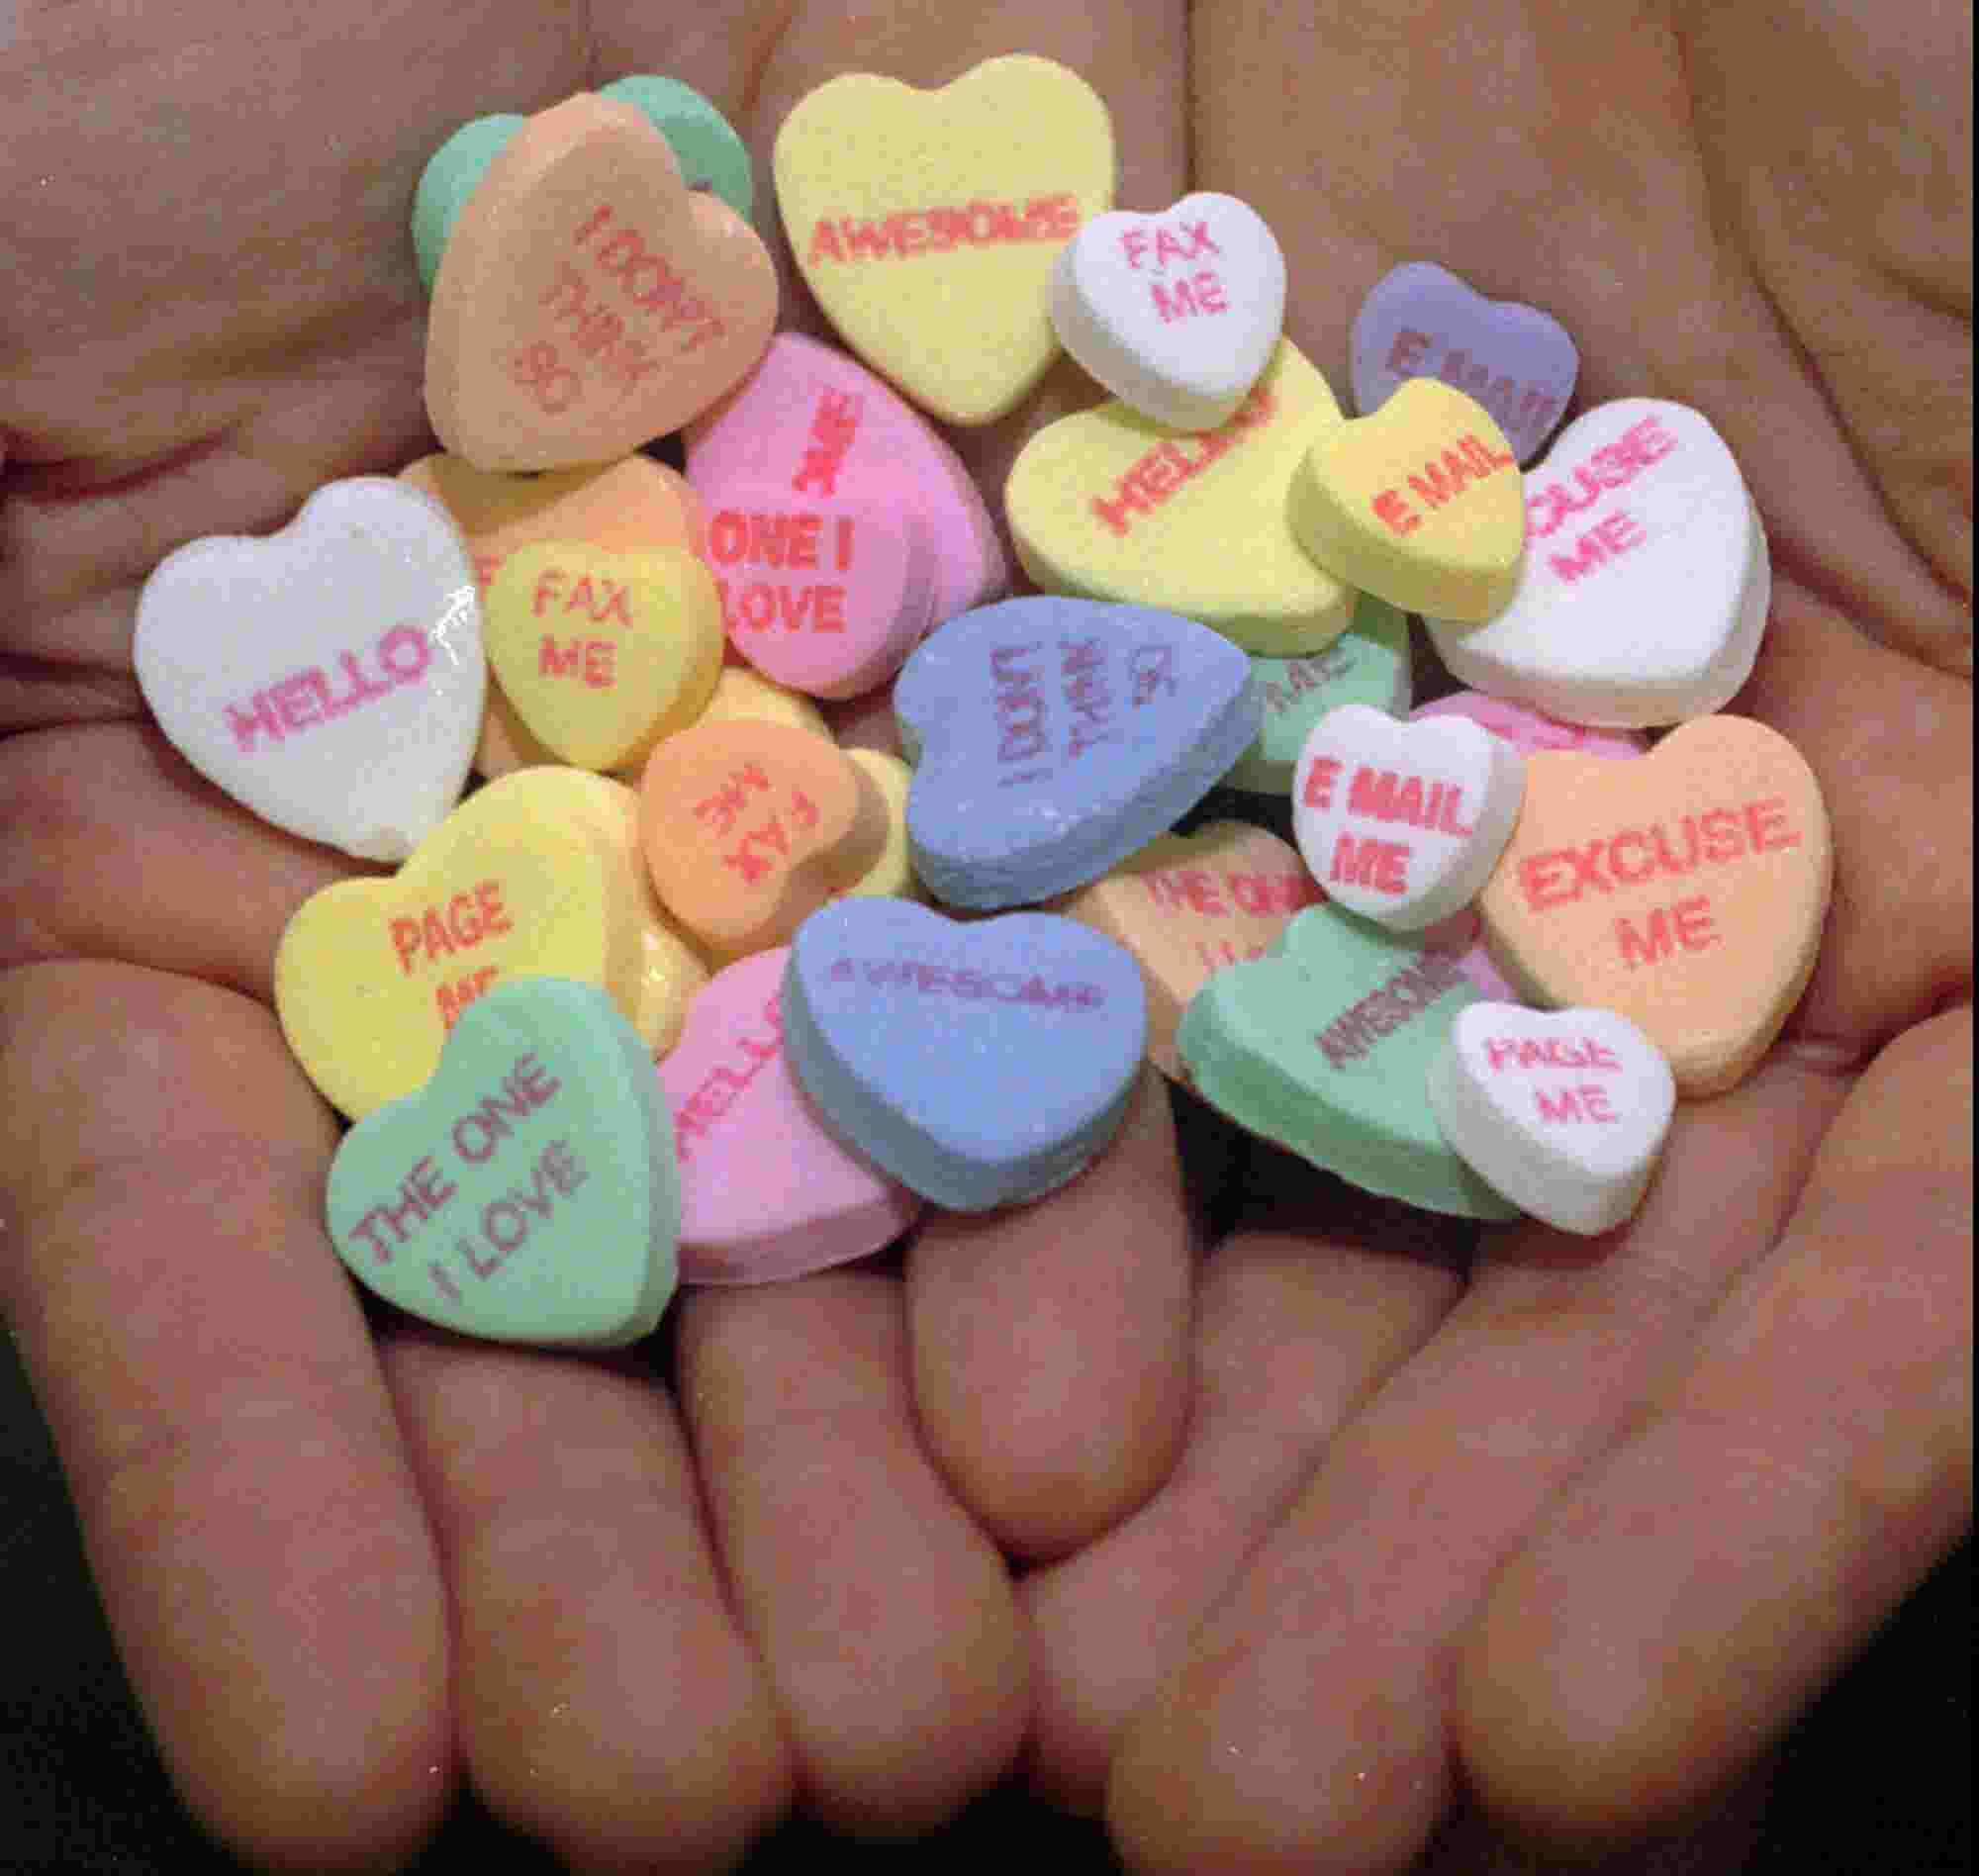 No Sweethearts this Valentine's Day as candy company closes